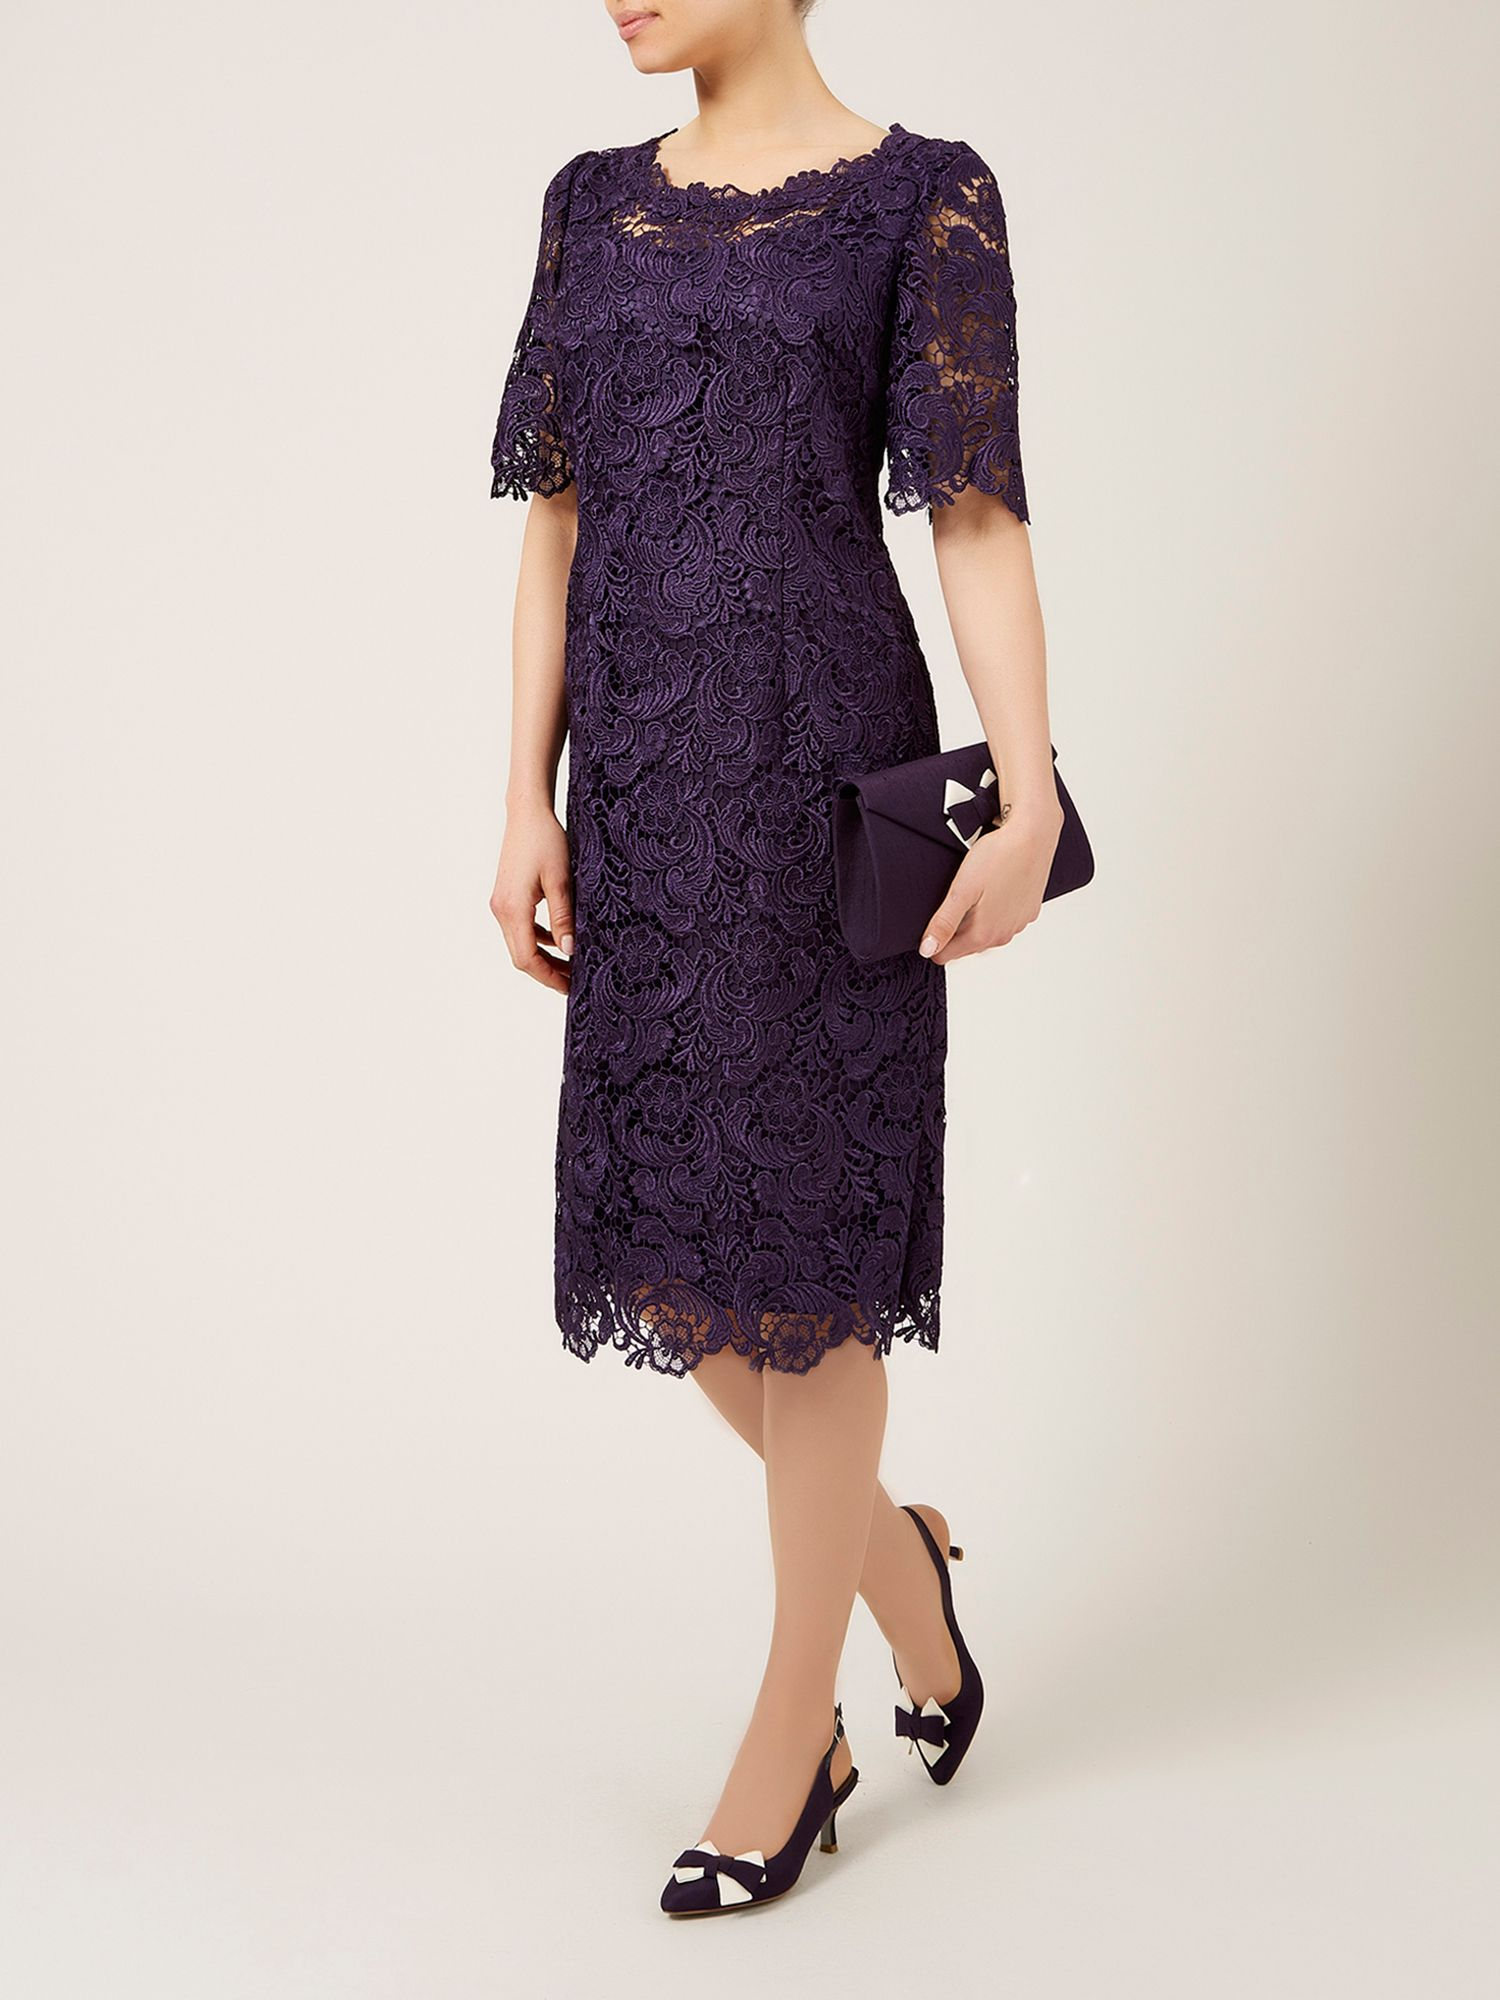 Lyst jacques vert luxury lace dress in purple for Luxury clothing